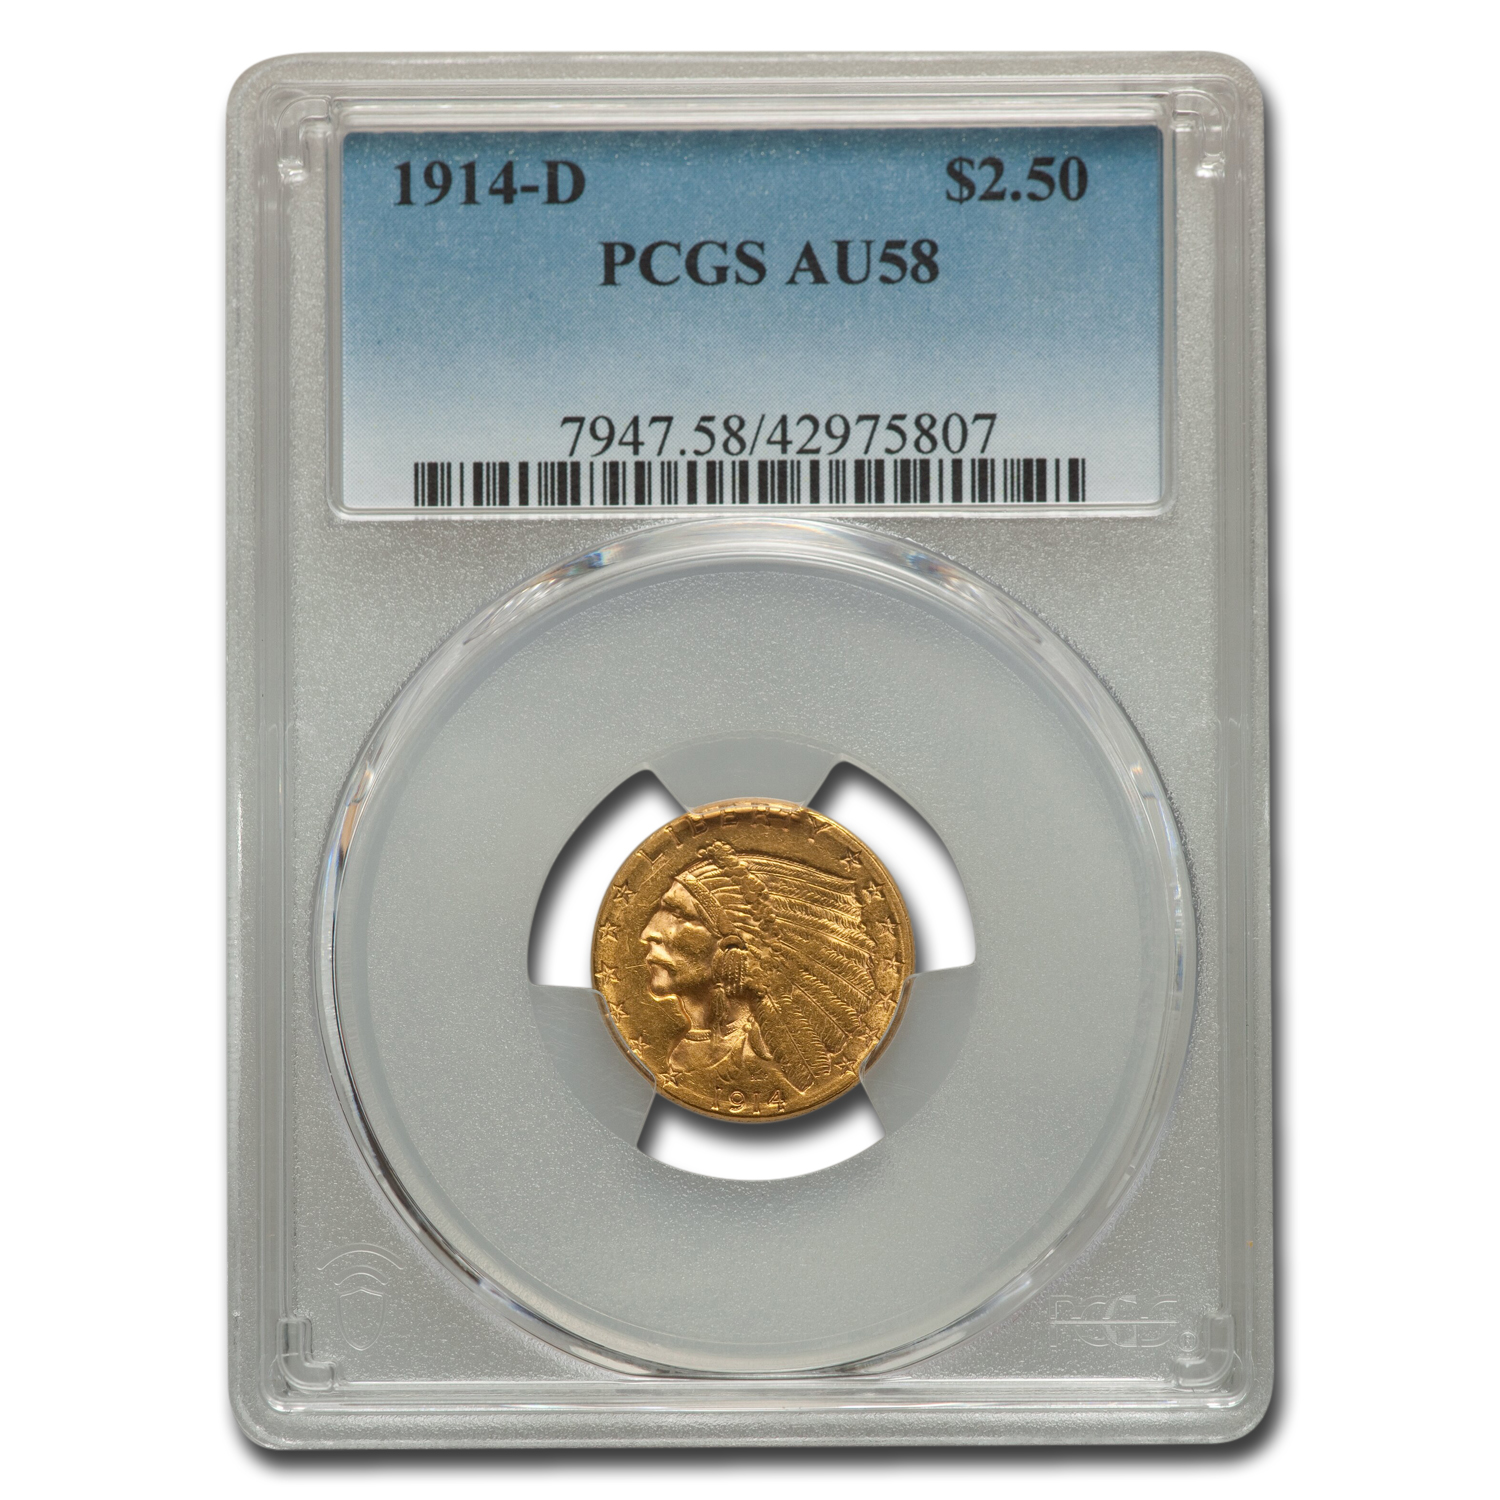 1914-D $2.50 Indian Gold Quarter Eagle - AU-58 PCGS